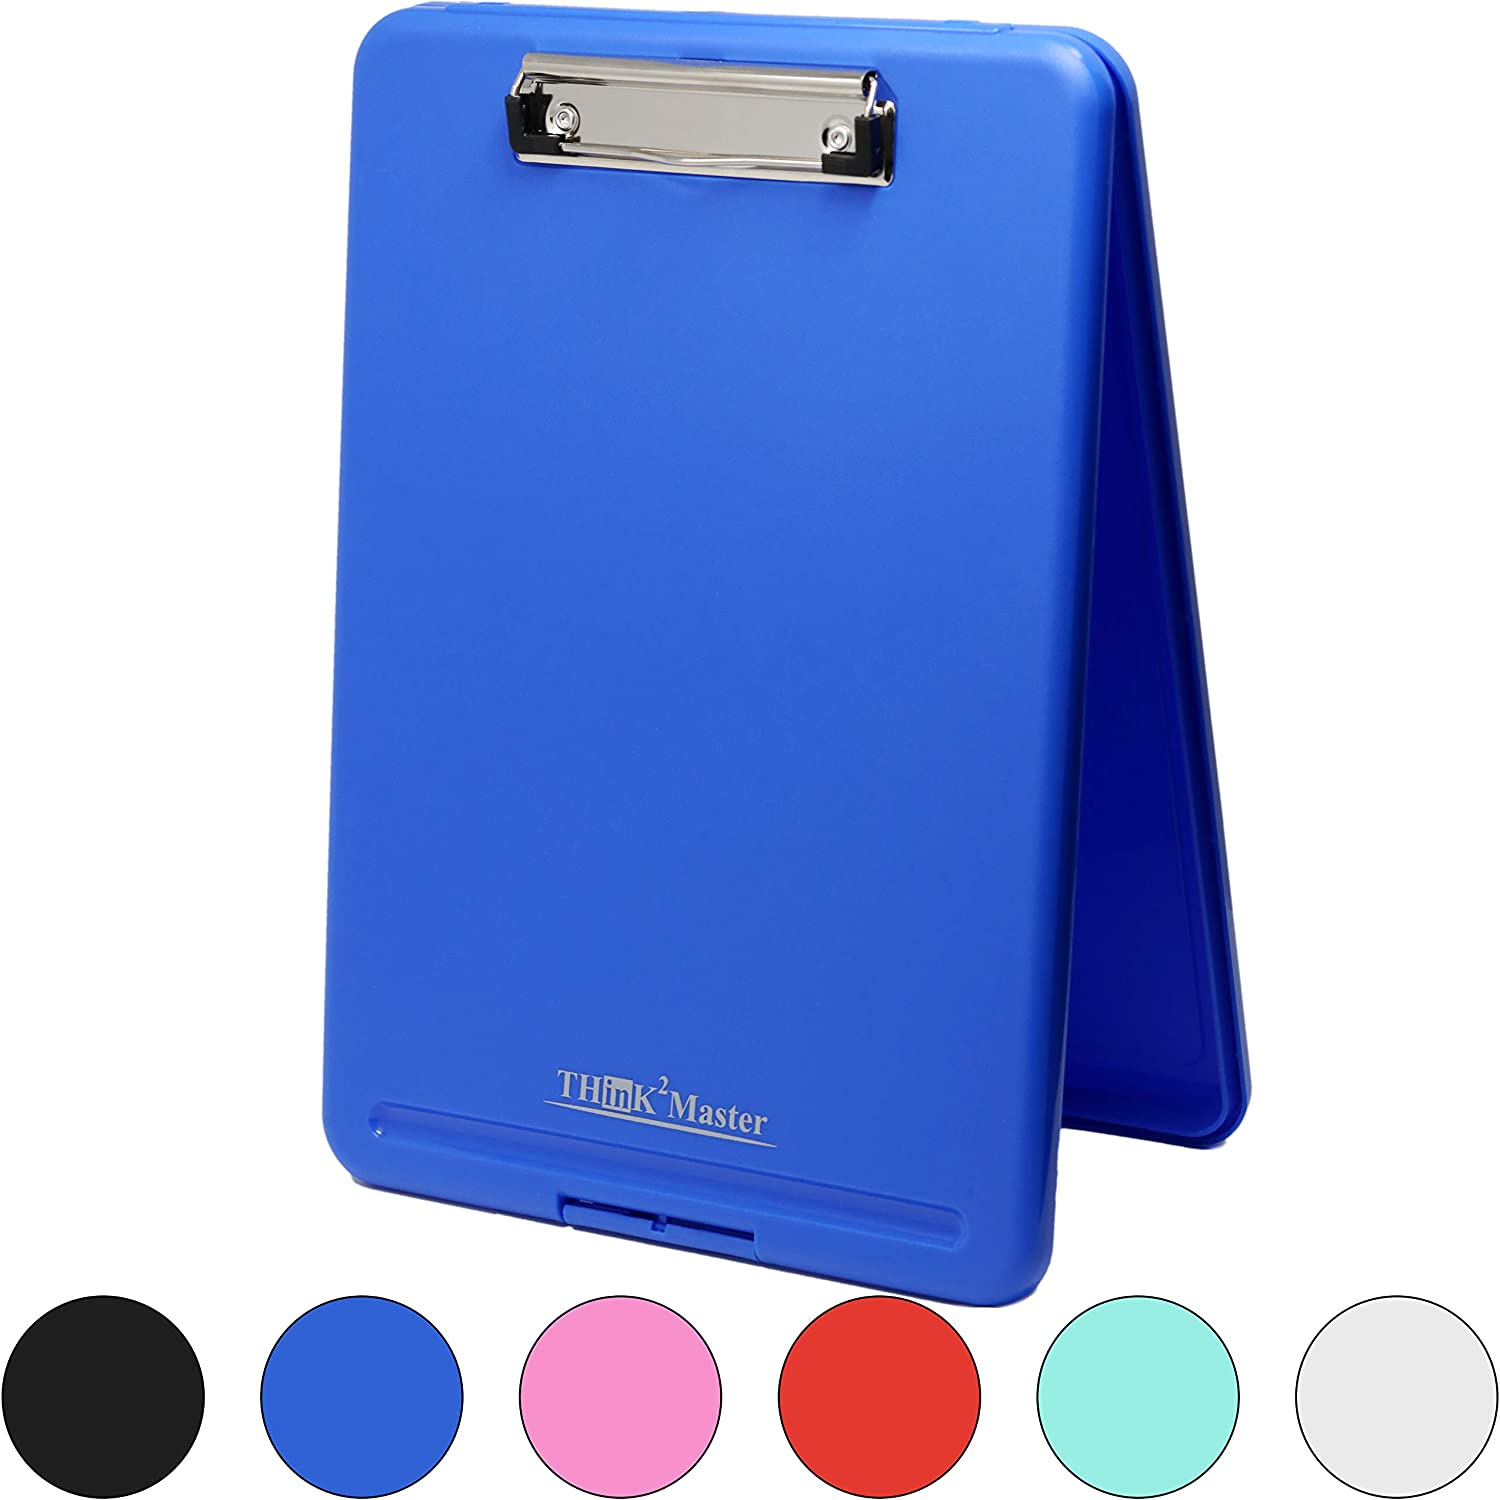 Think2Master Blue Plastic Storage Clipboard. | 25% Heavier & 25% Sturdier| Heavy Duty and Won't Flex or Bend Like Other Brands (Compare The Weight). Storage Compartment Holds 150 Letter Sized Paper.